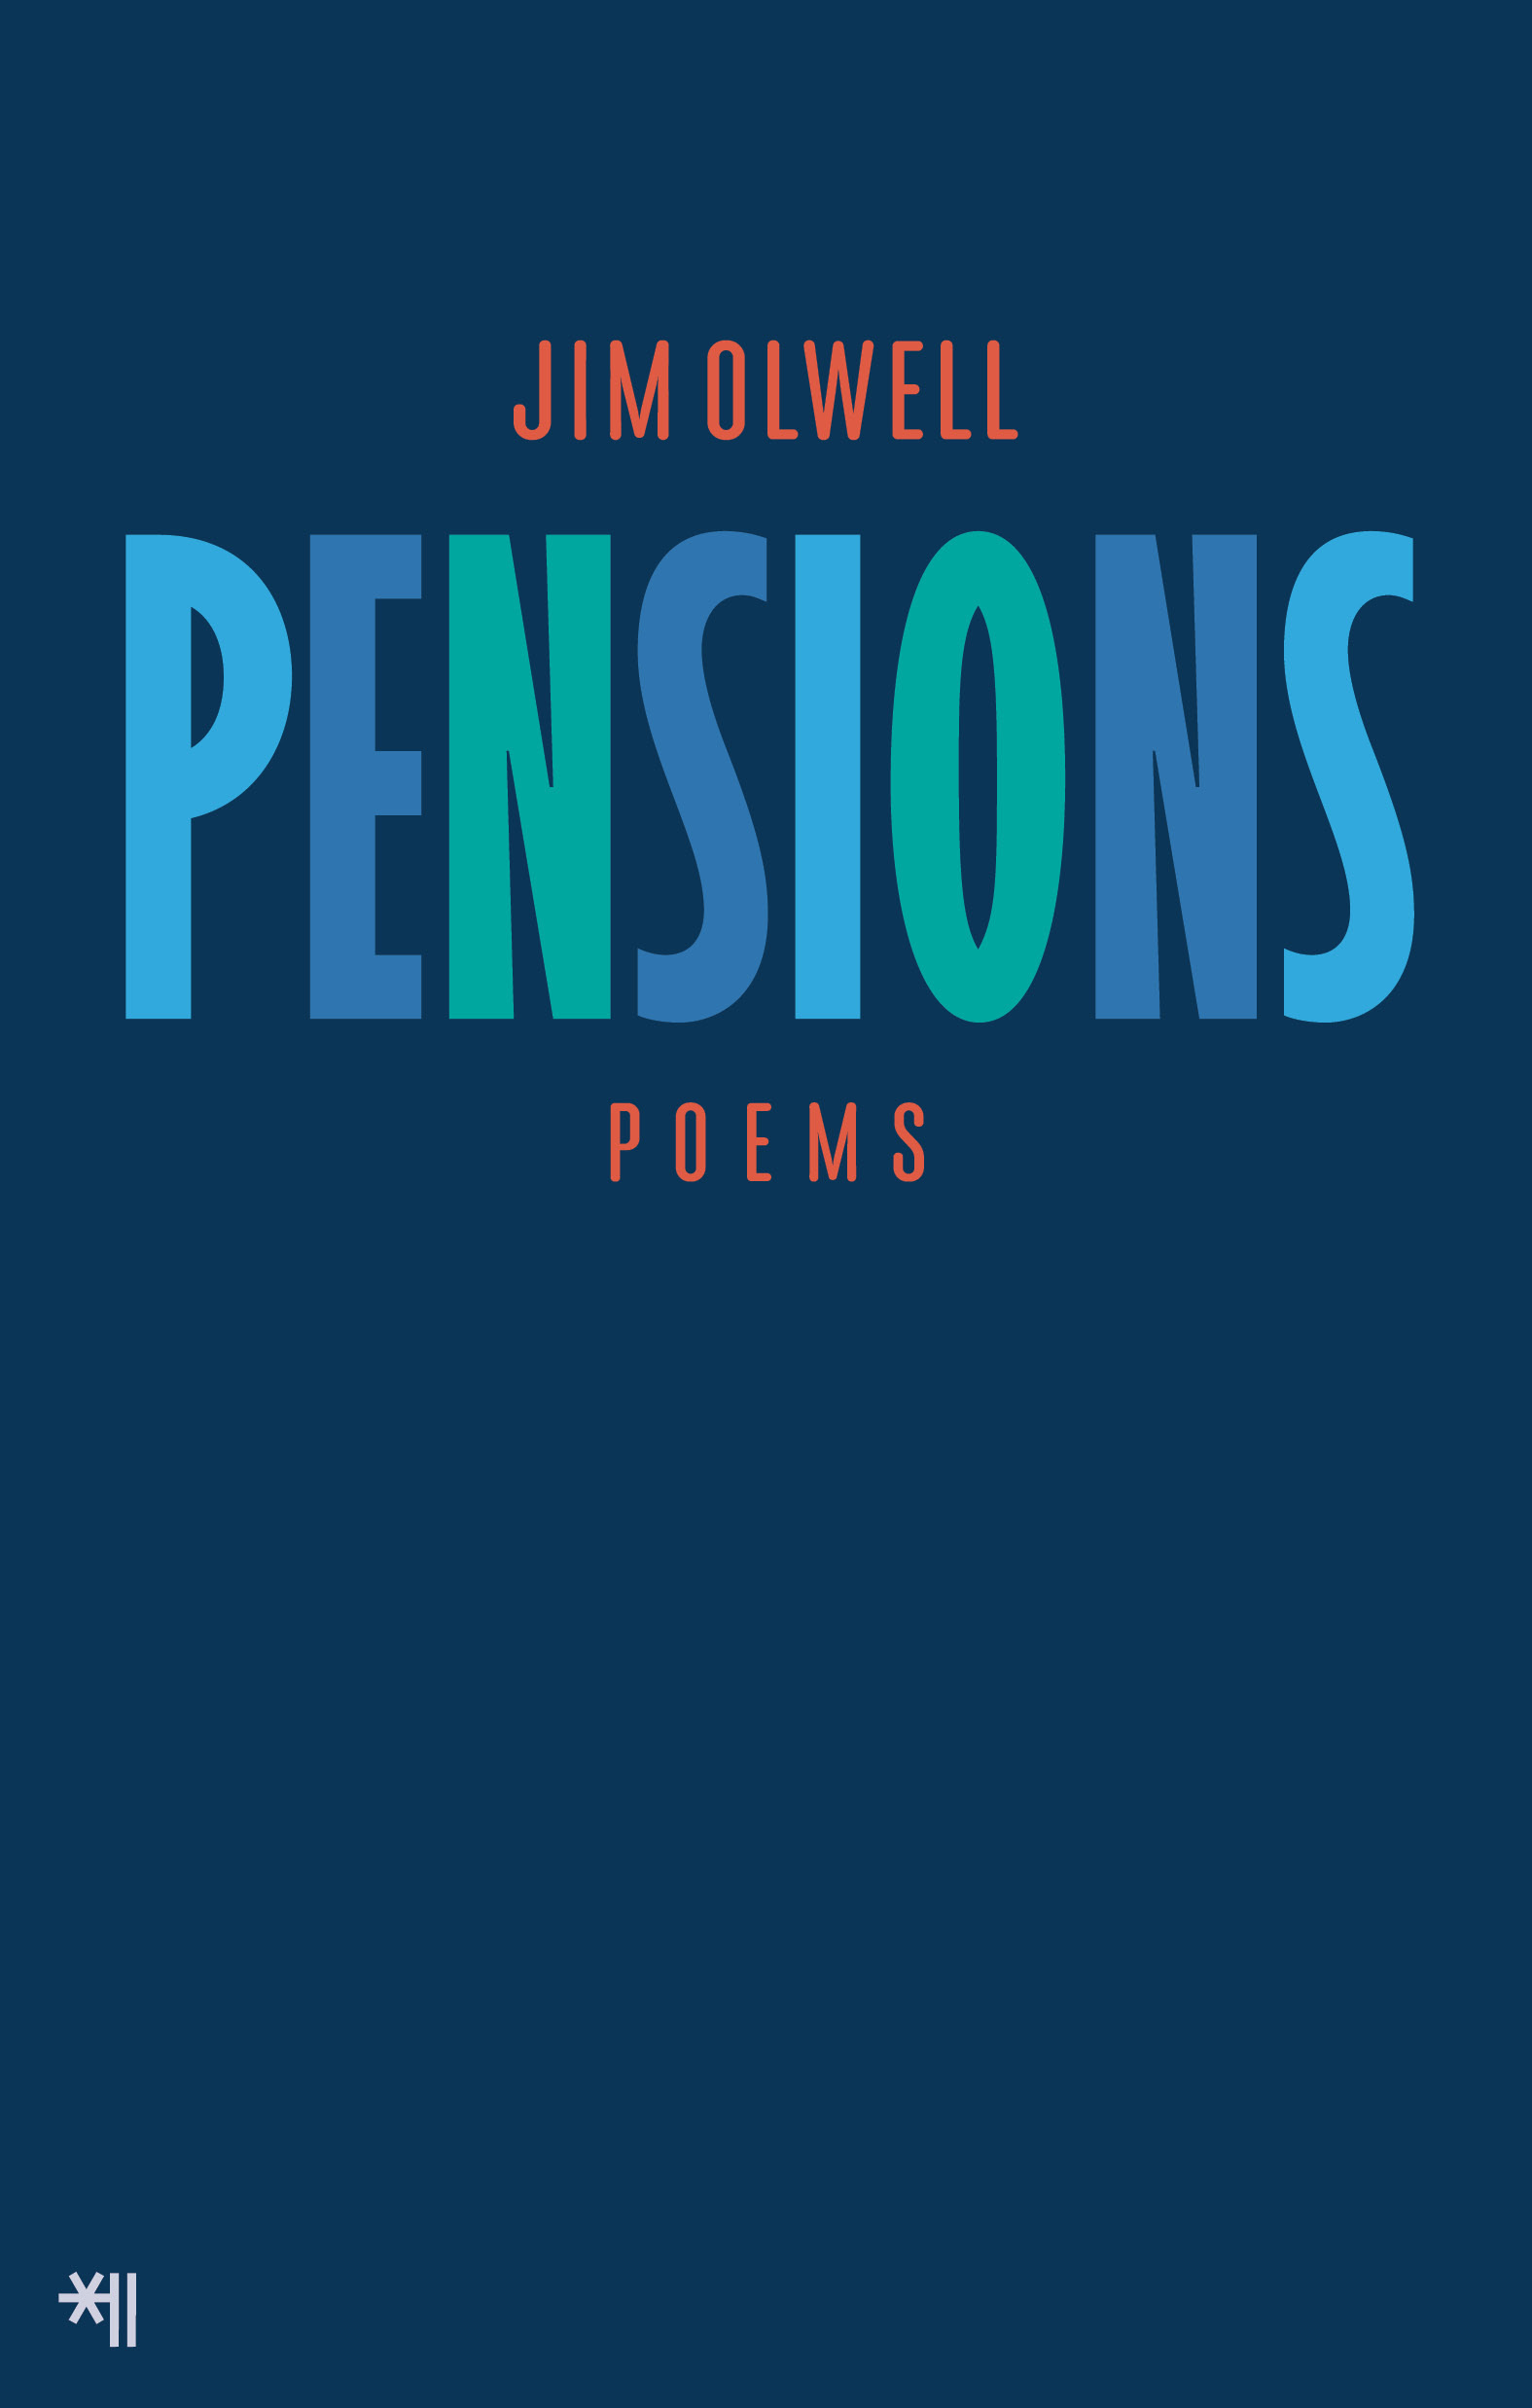 Jim Olwell, Pensions, chapbook.